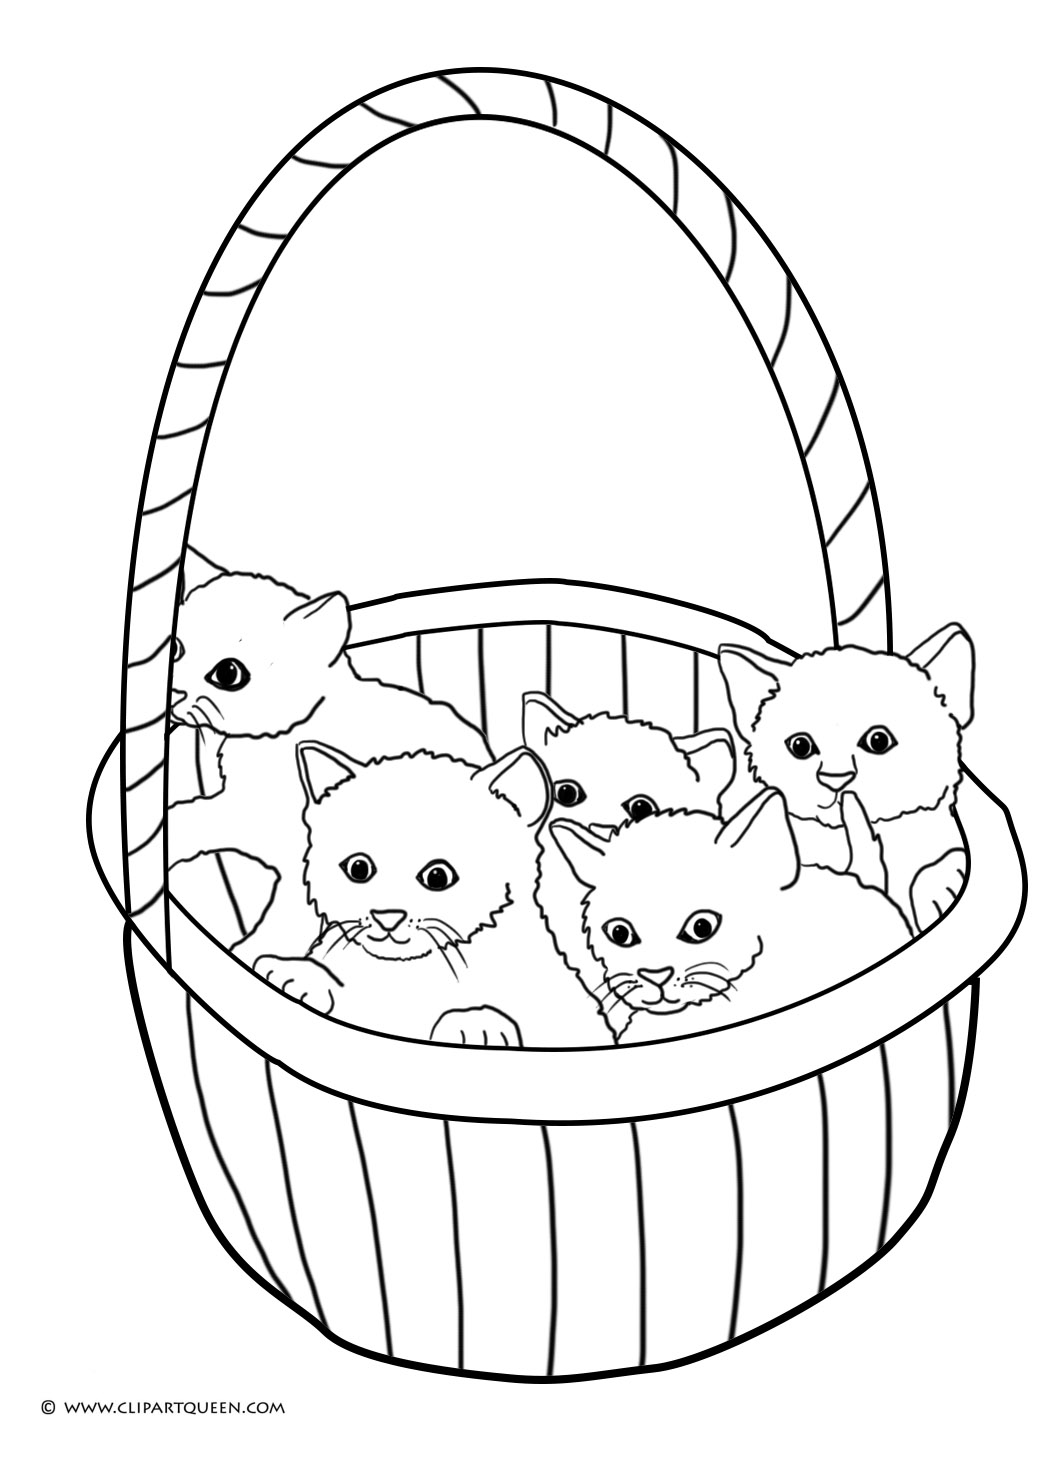 colouring pictures cats kittens cute kitten coloring page free printable coloring pages cats pictures kittens colouring